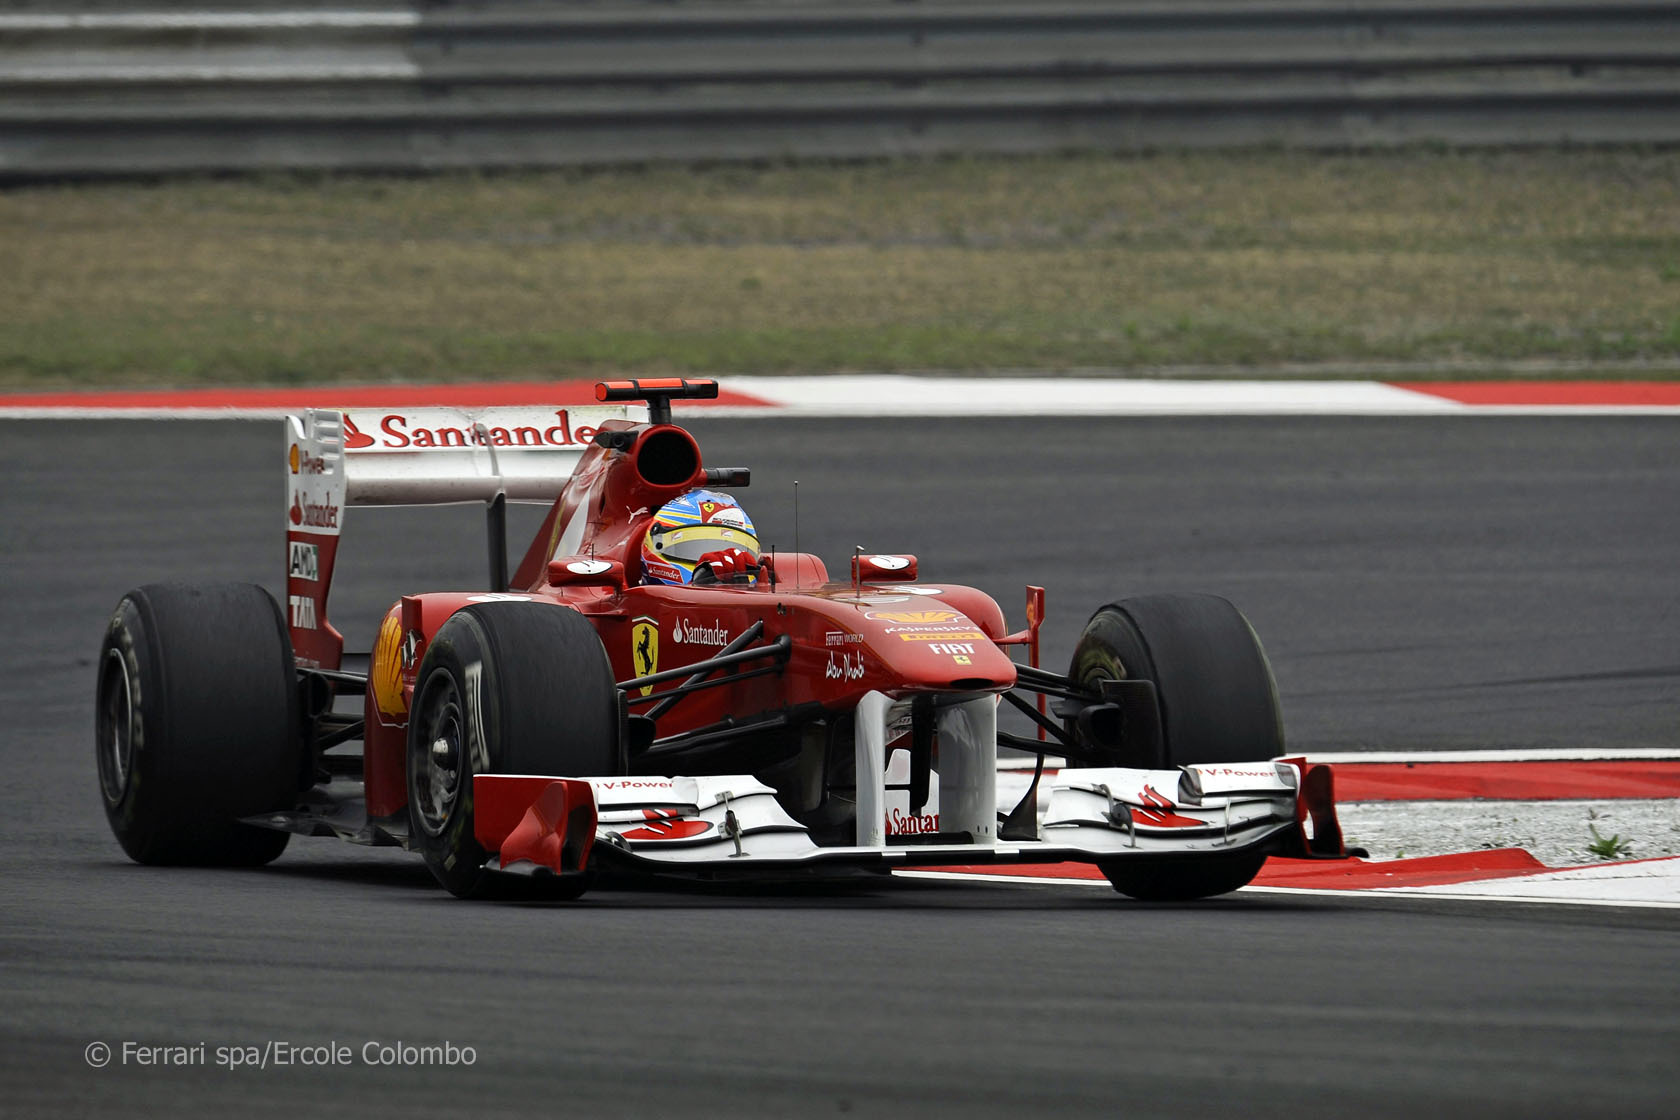 fernando alonso formula one HD Wallpaper